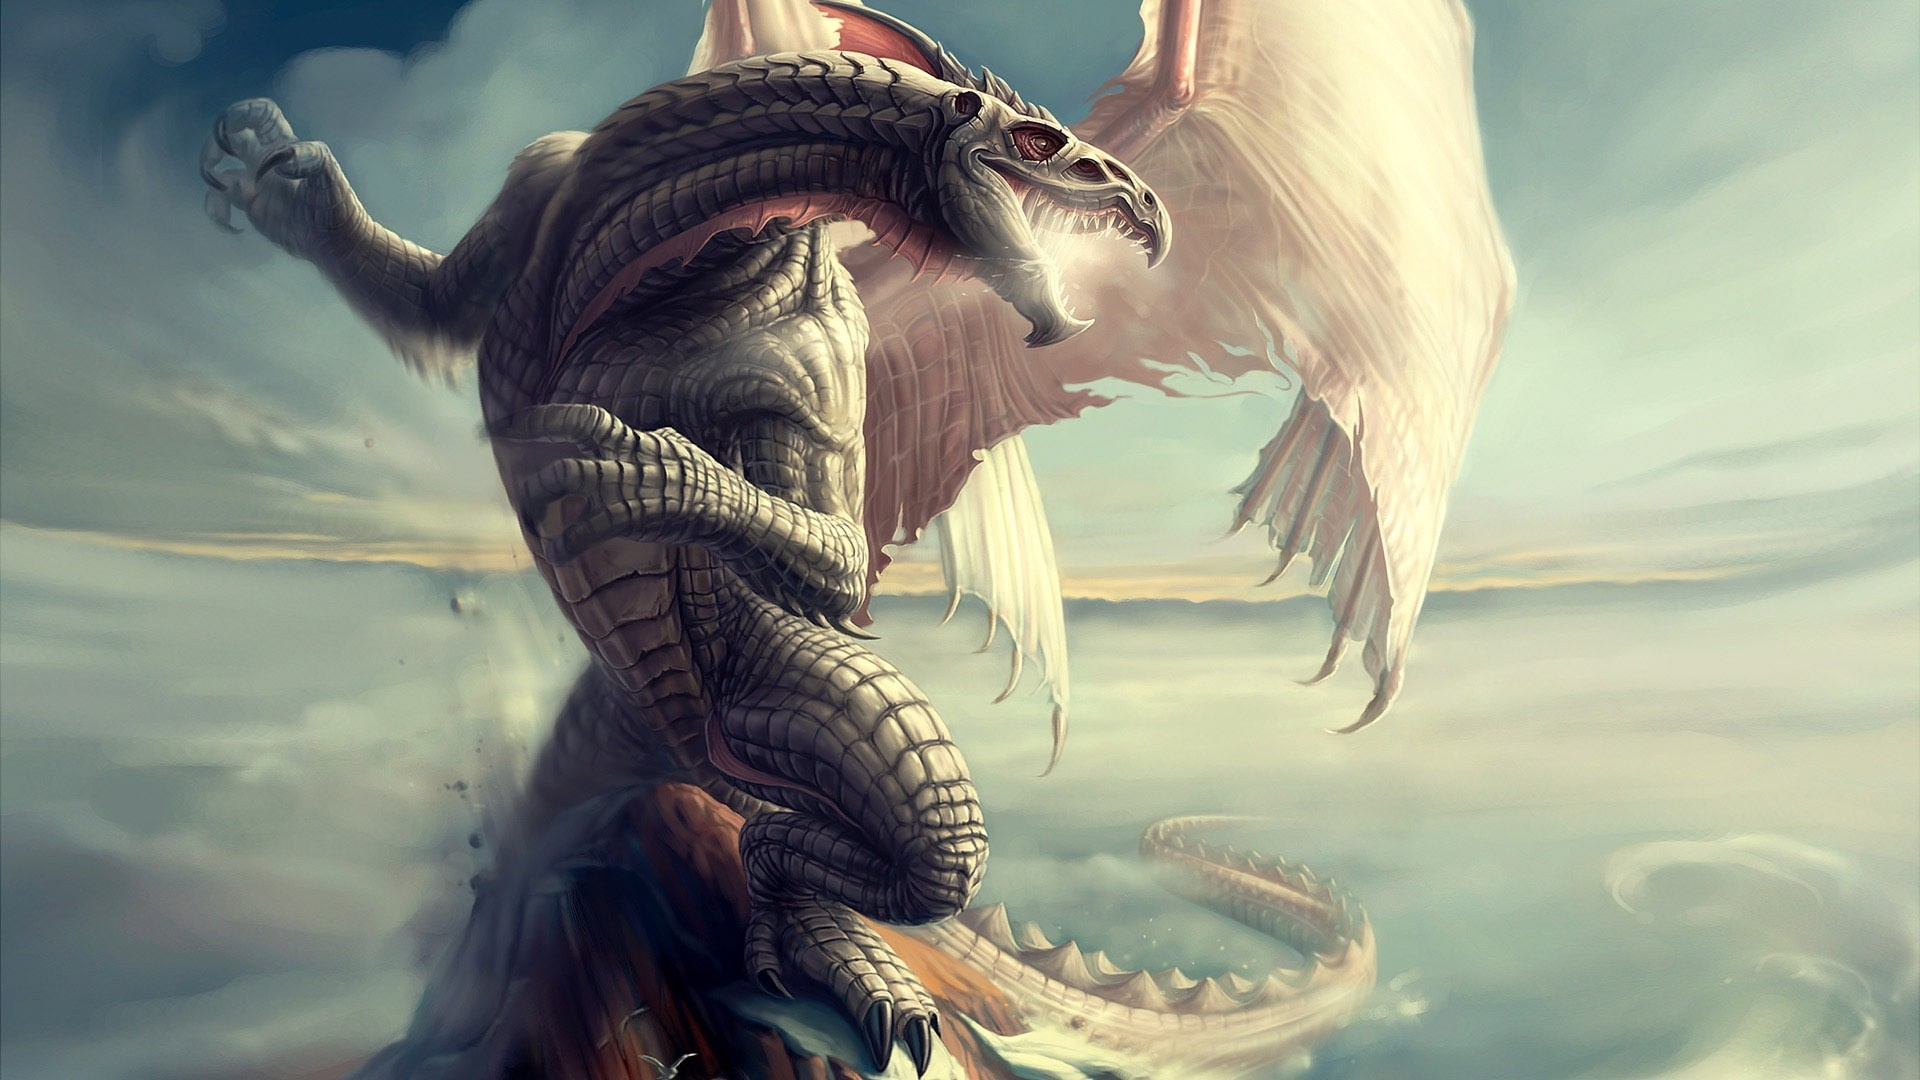 Wallpapers dragon hd wallpaper wallpapers dragon hd voltagebd Gallery